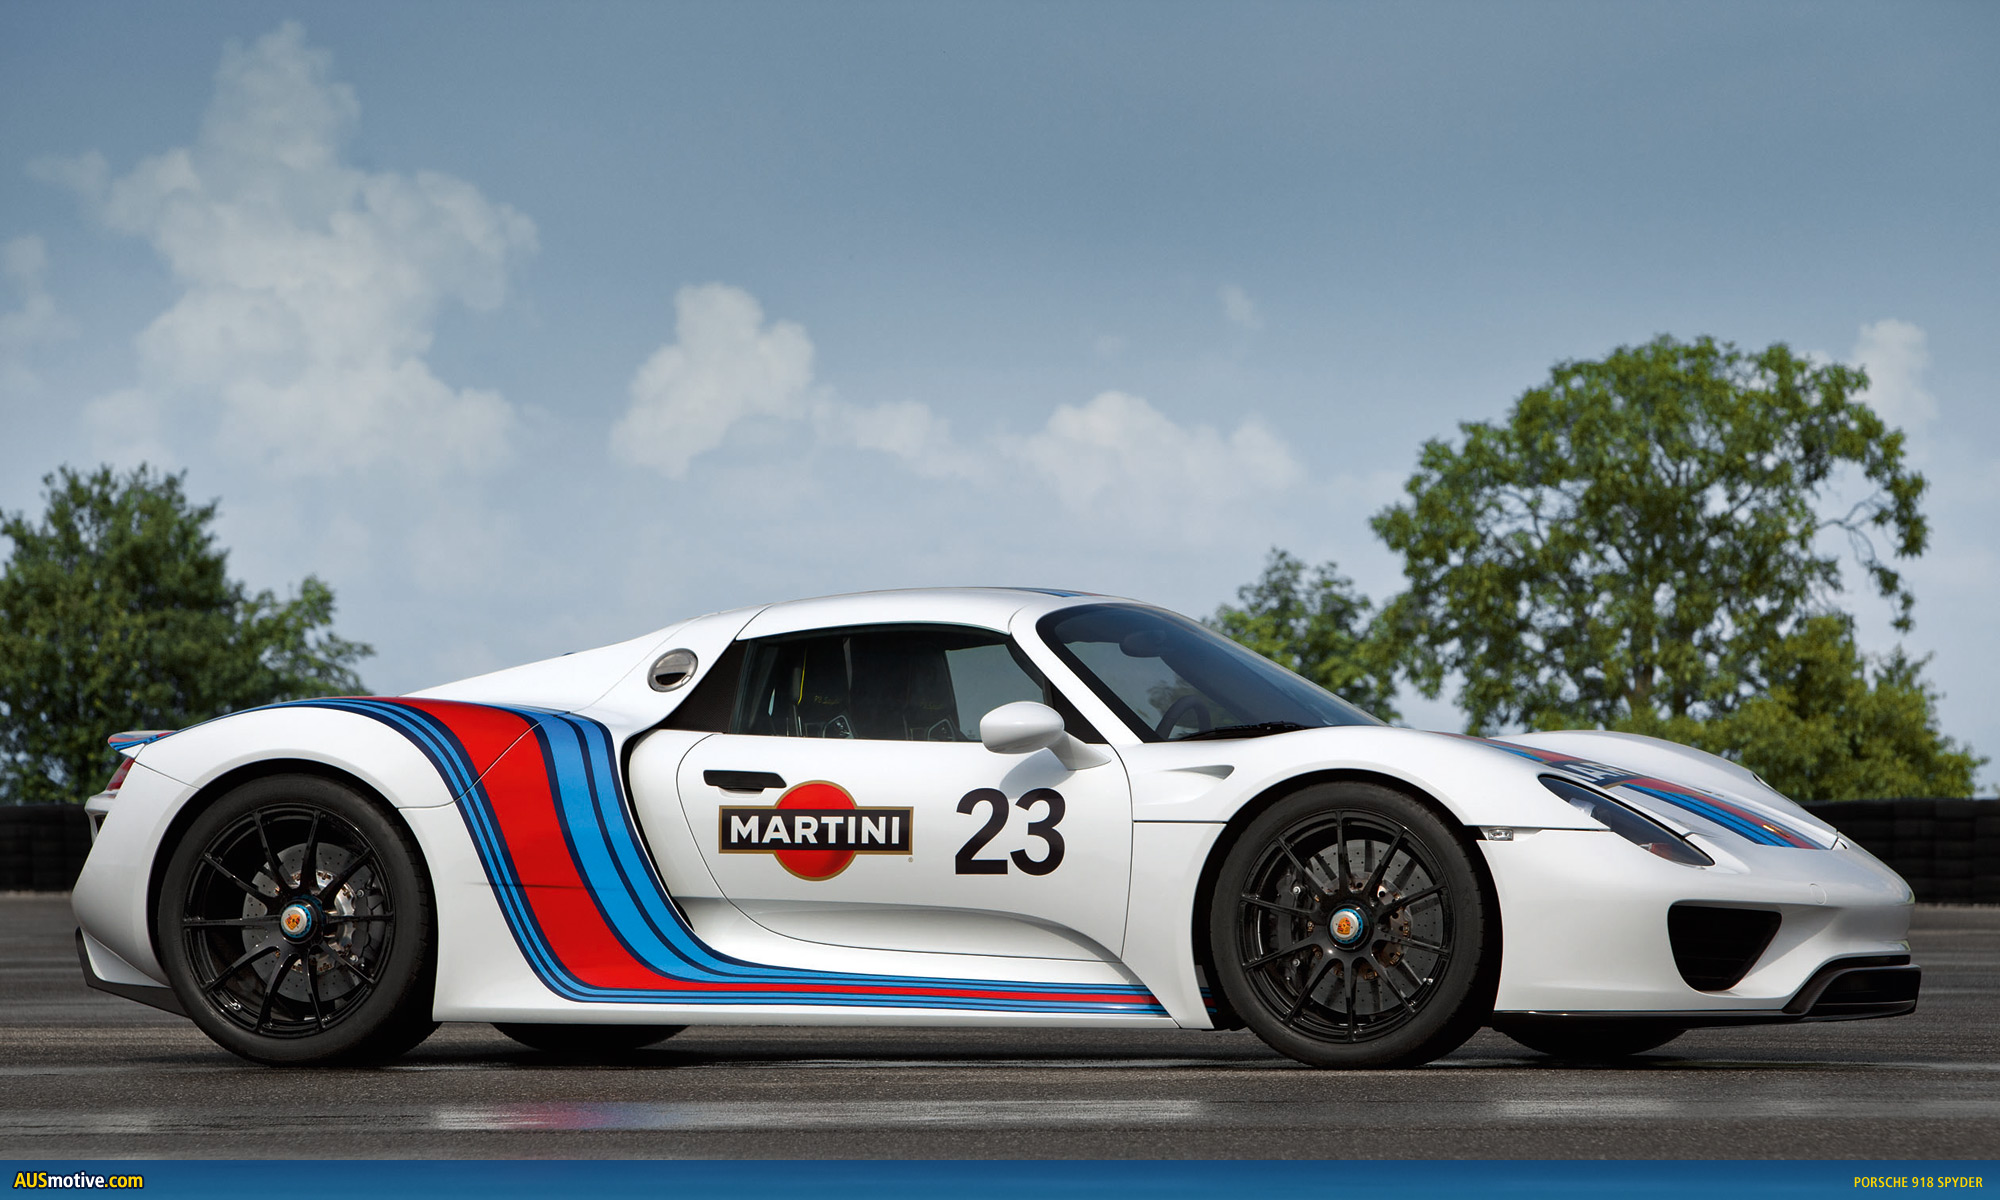 Porsche 918 spyder in classic martini livery for Porsche 918 interieur